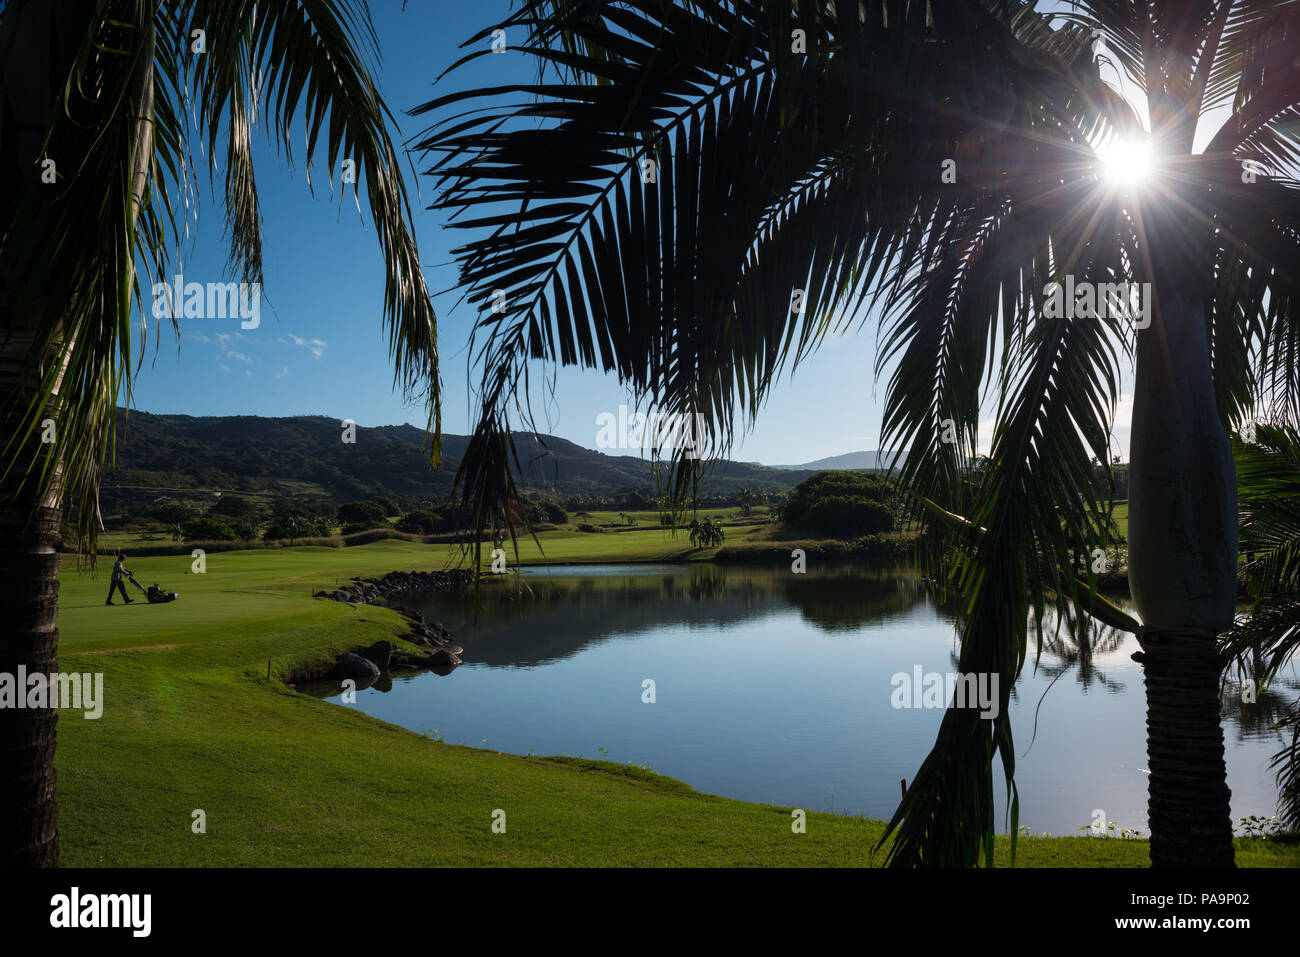 Tropical golf - Stock Image